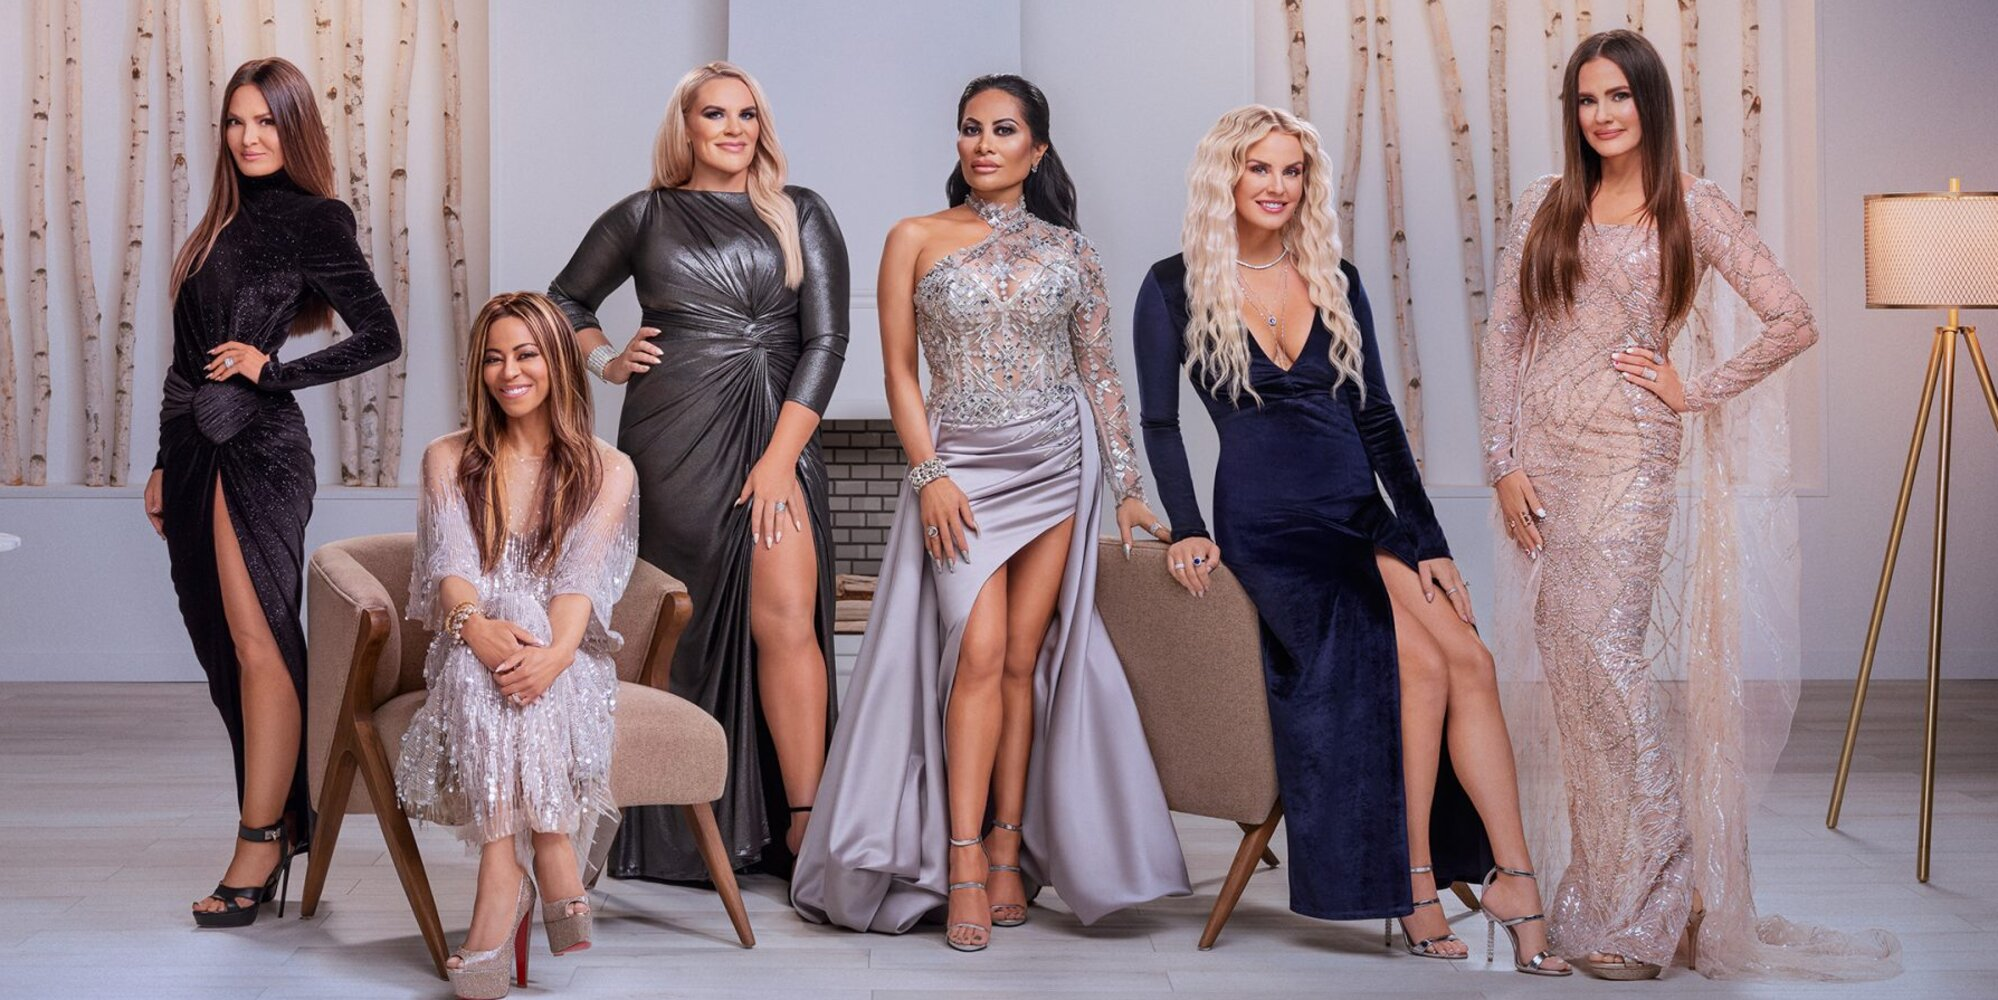 The Real Housewives of Salt Lake City Stars Grapple with 'Perfection' and Religion in Trailer